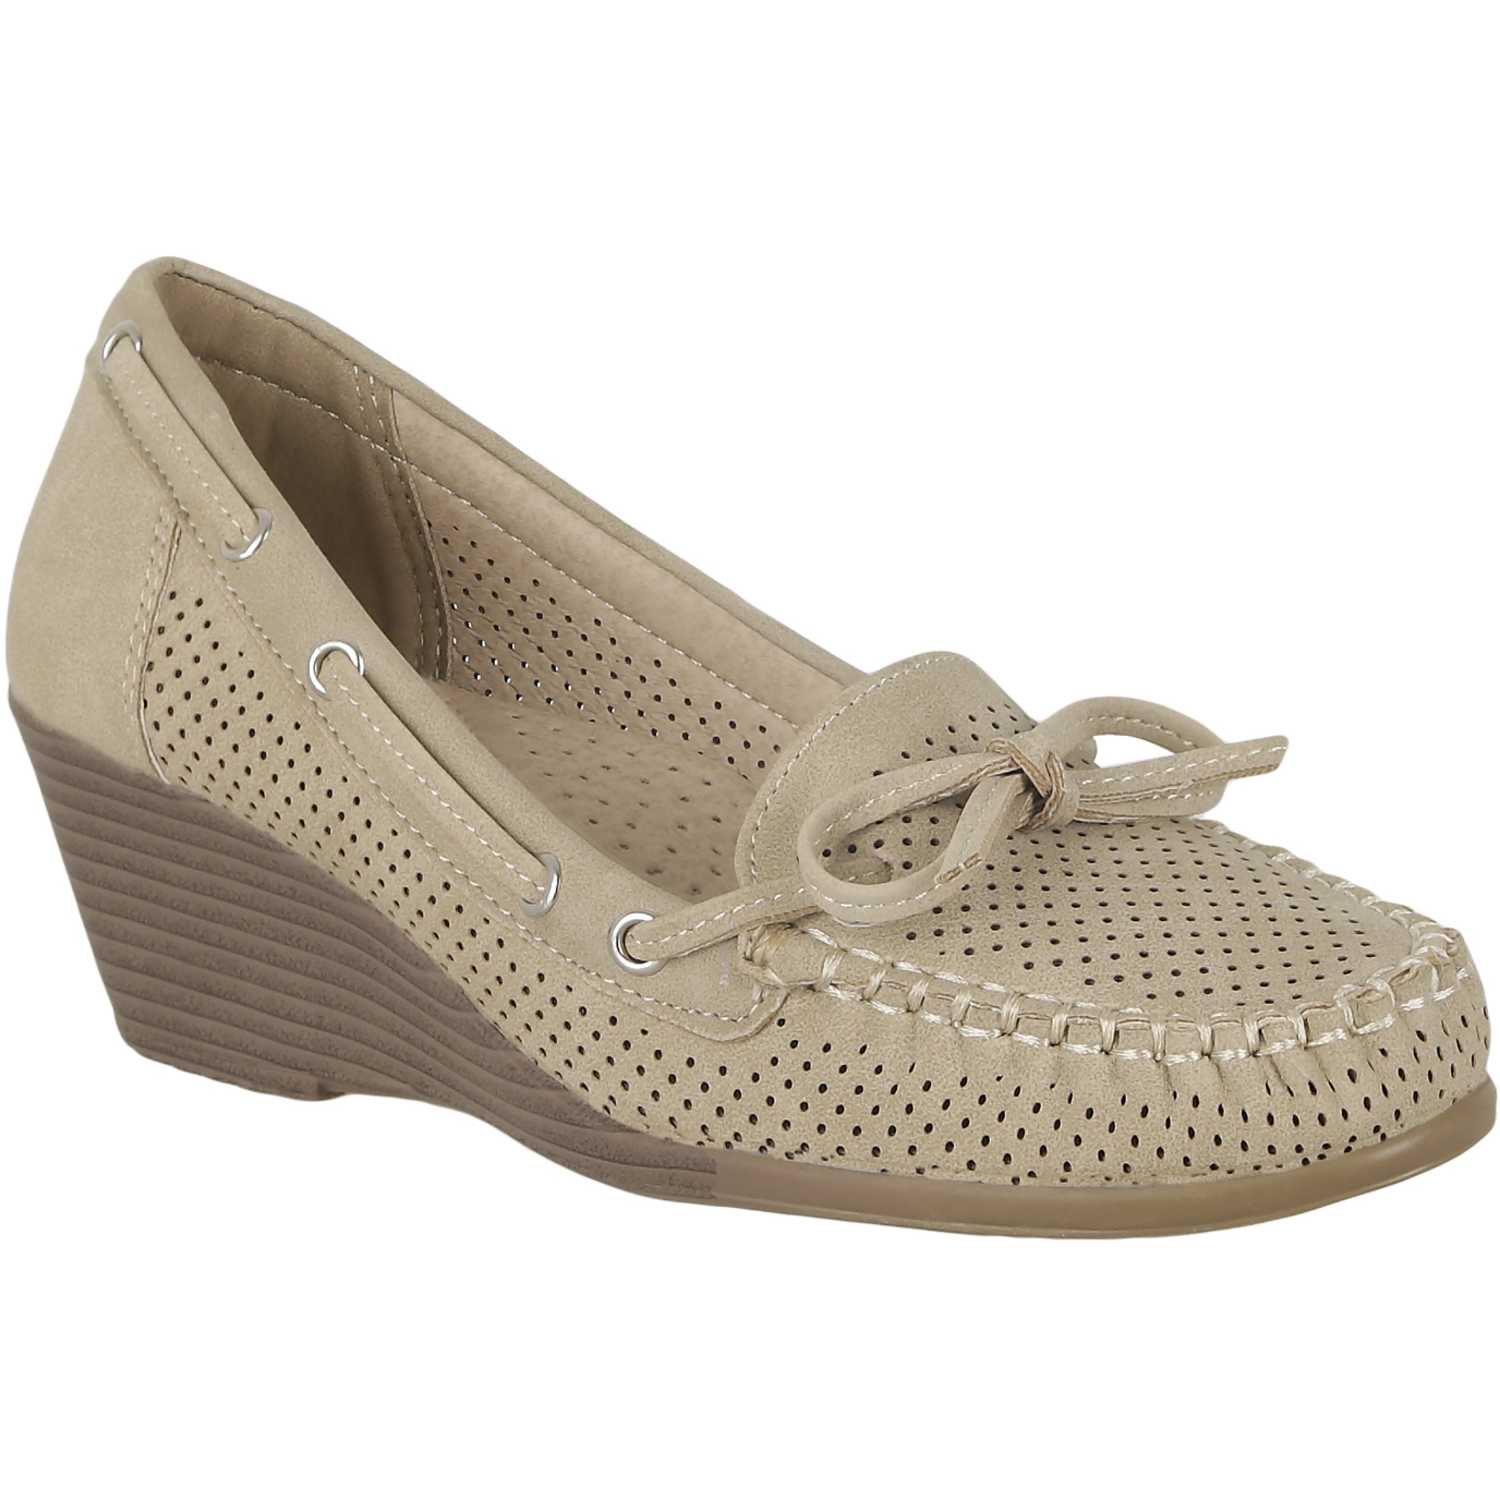 Casual de Mujer Platanitos Beige mw 37a2